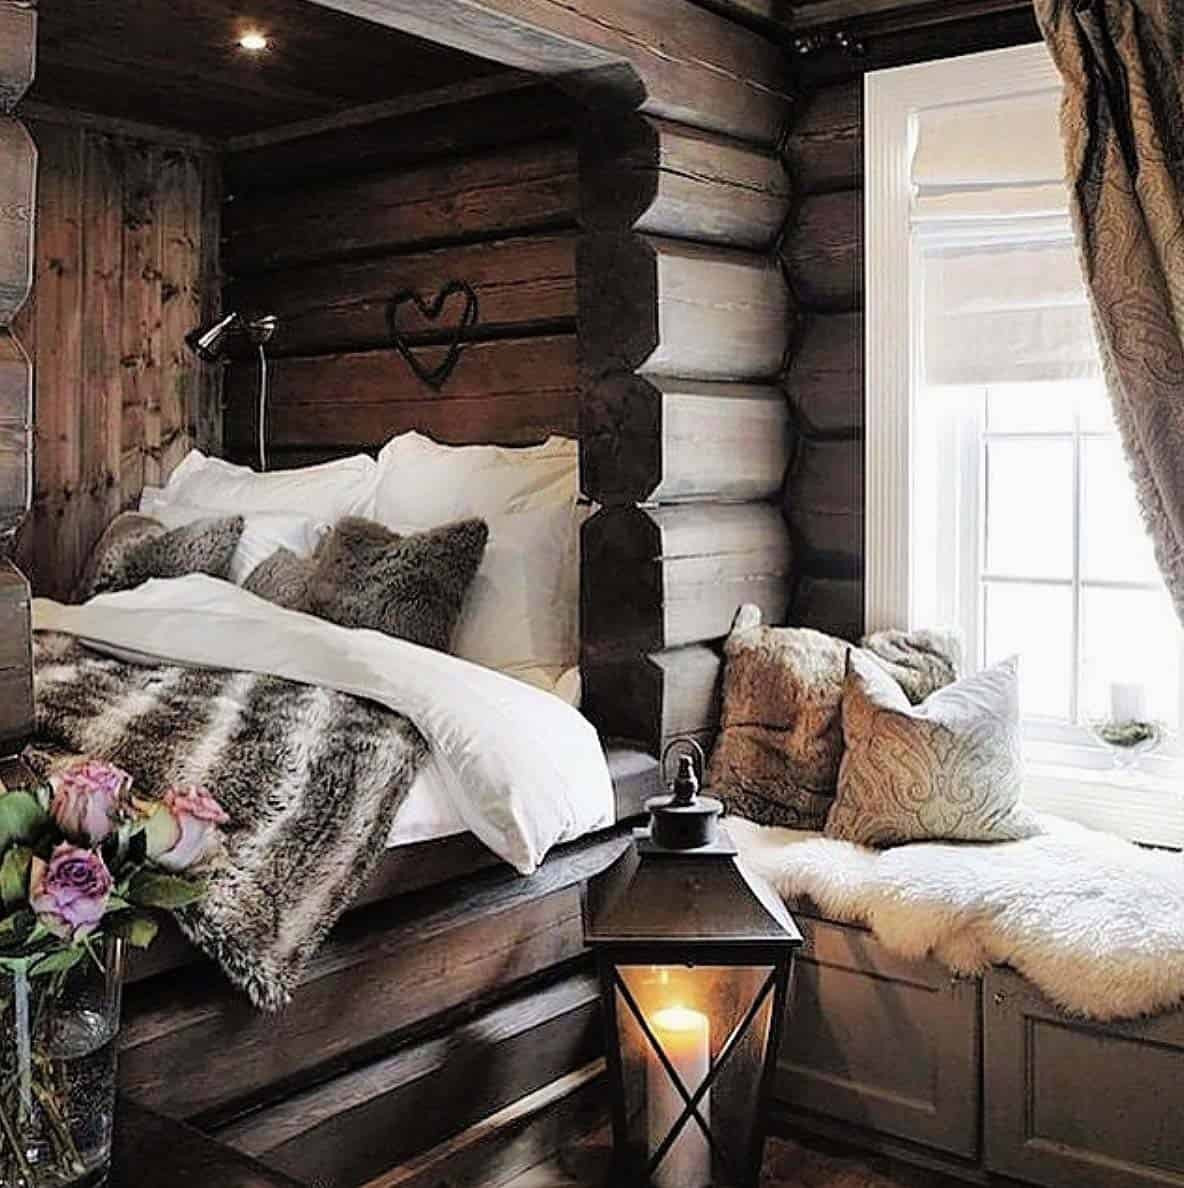 Cozy Bedroom Decorating Ideas For Winter-32-1 Kindesign